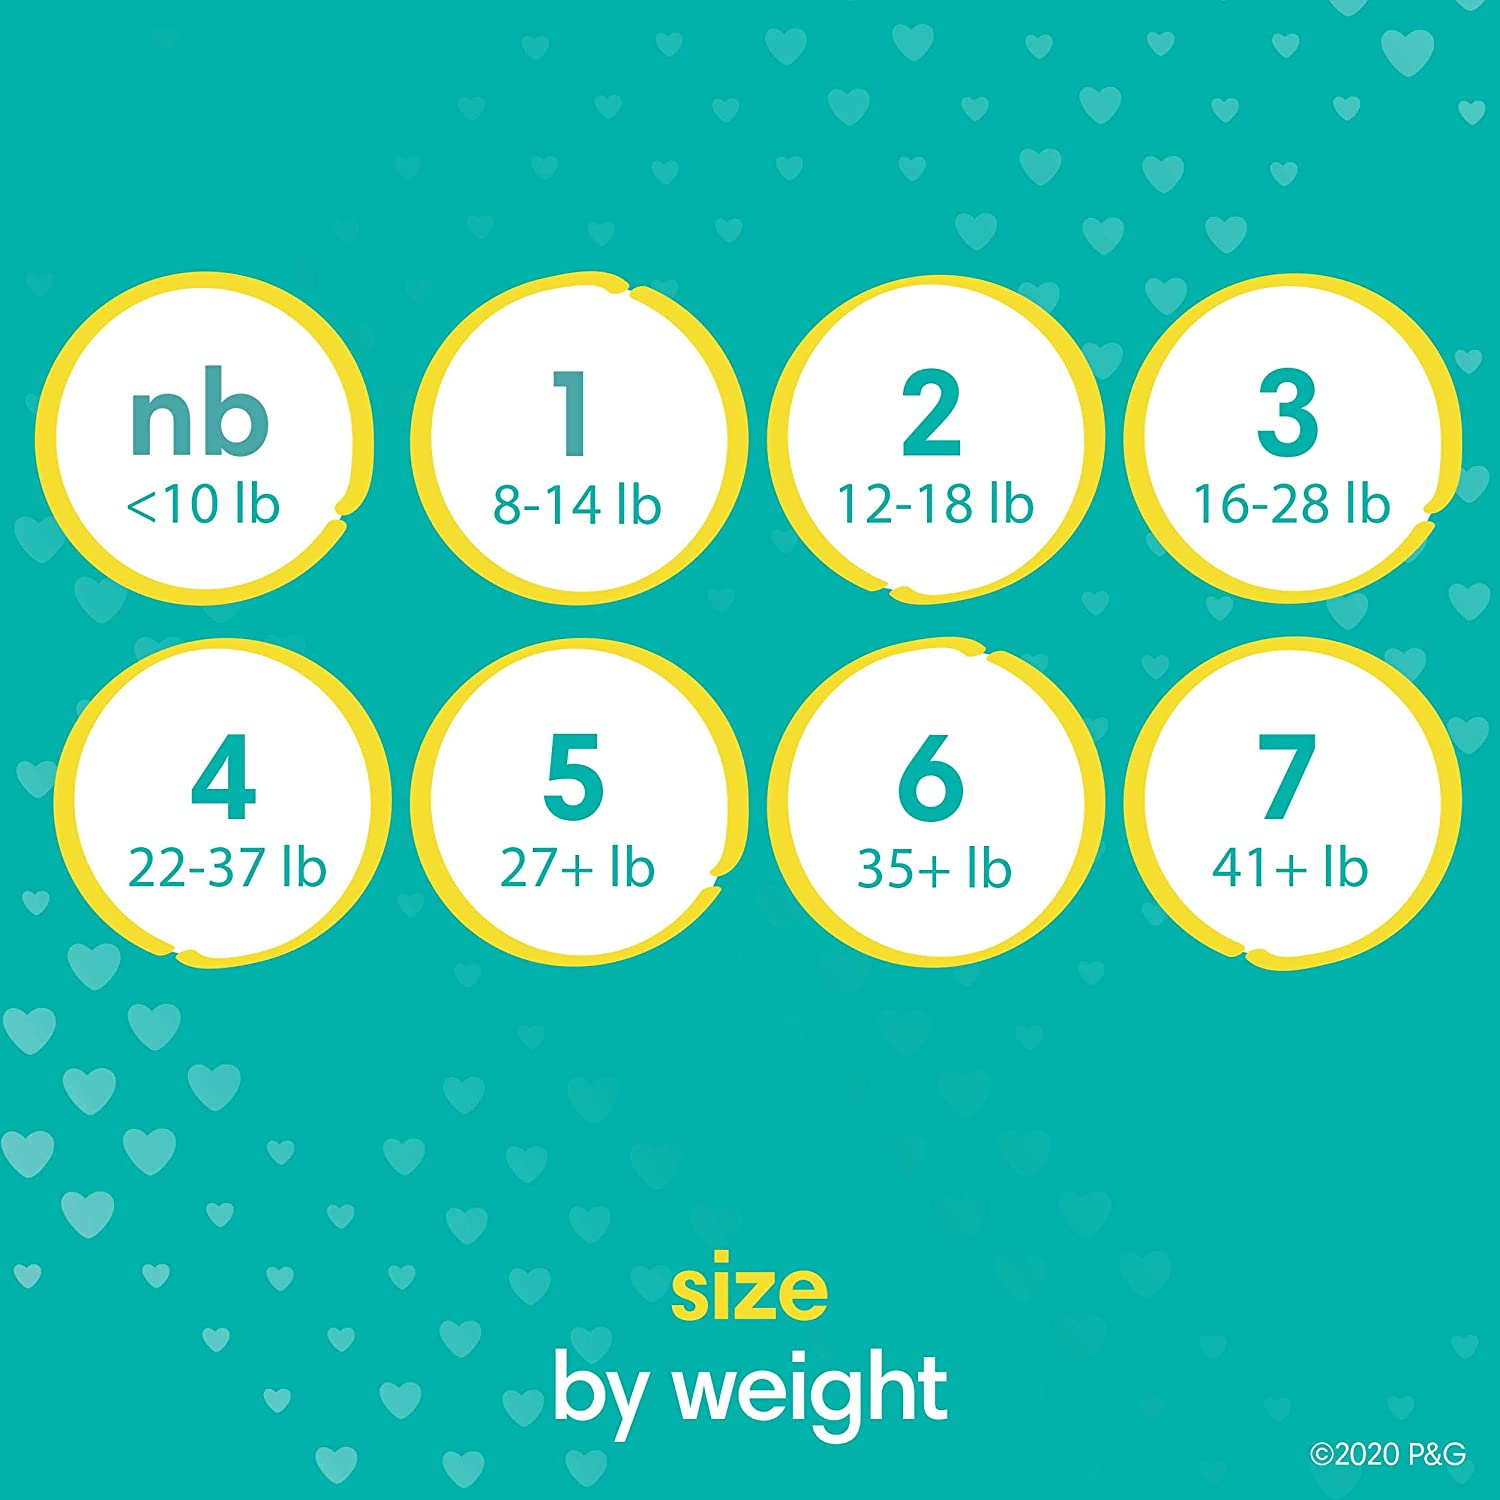 Baby Diapers Newborn/Size 1 (8-14 lb), 198 Count - Pampers Swaddlers, ONE MONTH SUPPLY (Packaging and Prints on Diapers May Vary): Health & Personal Care